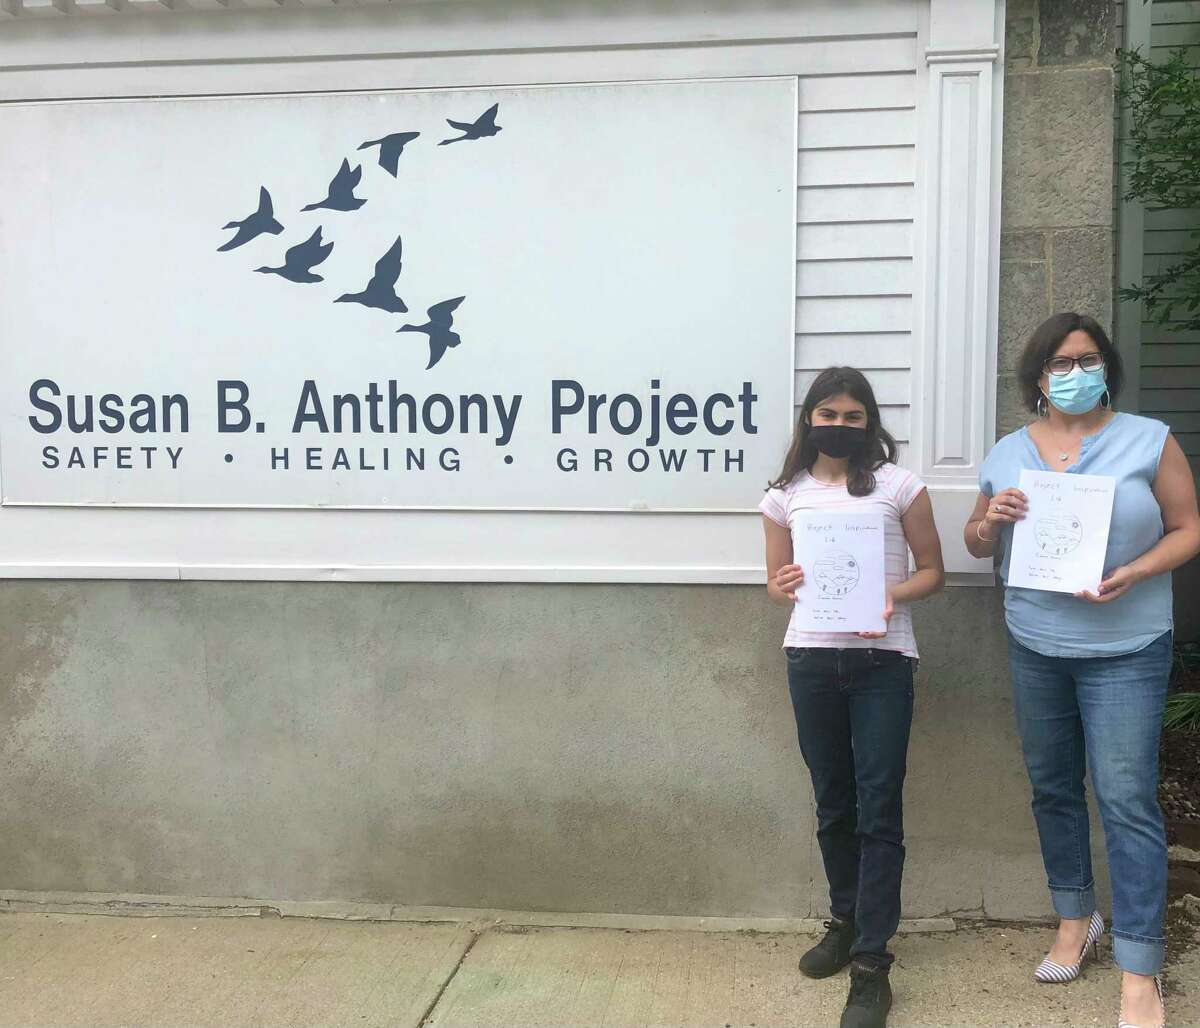 Cianna Ferraro, 13, an eighth-grader at Northwest Regional No. 7, created and donated more than 80 coloring books with uplifting messages and activities to the Susan B. Anthony Project June 4. She is pictured with Gina Devaux from Susan B. Anthony.